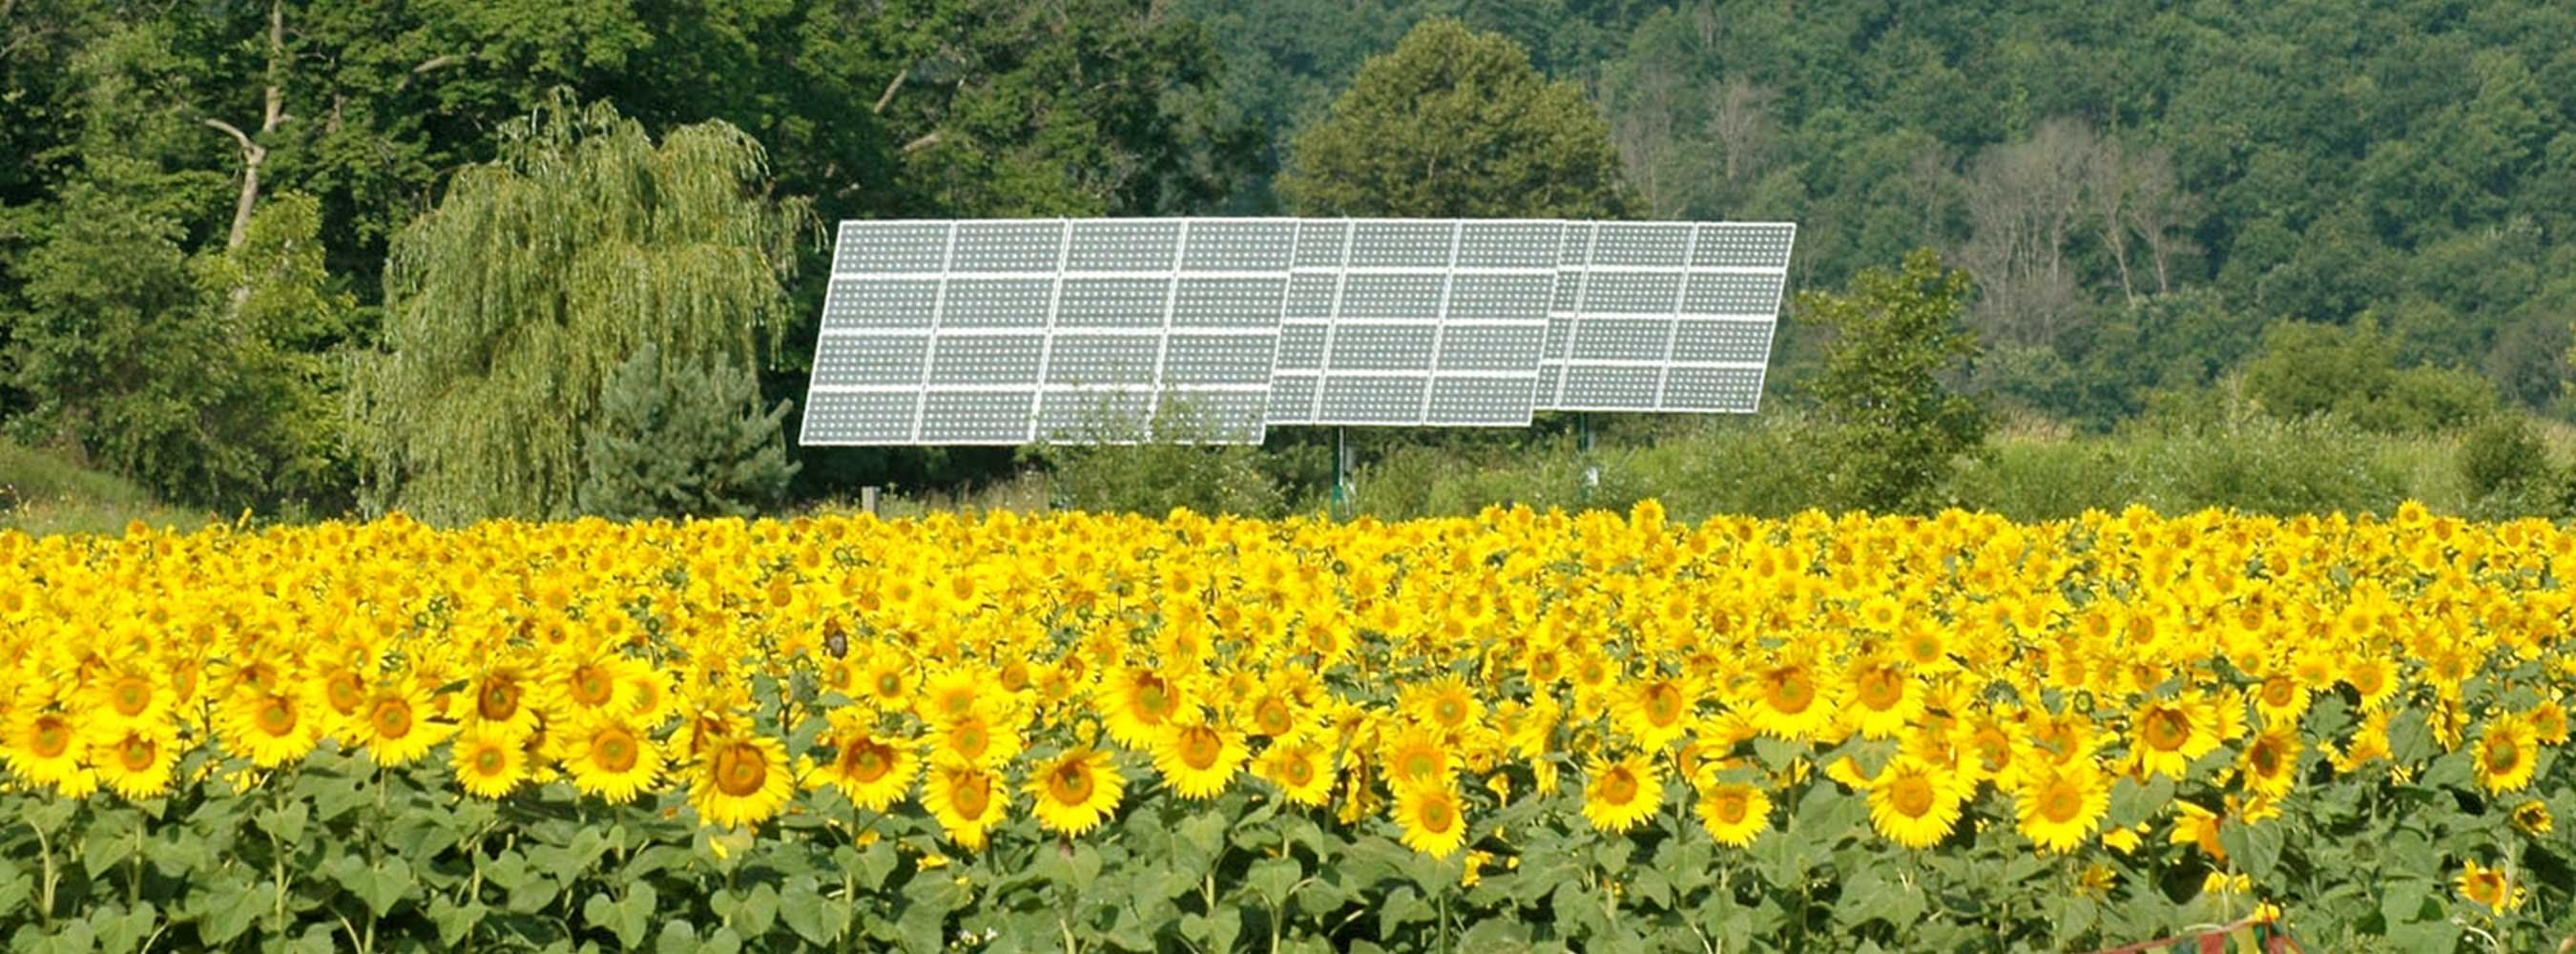 A field of sunflowers with three solar panels in the background.